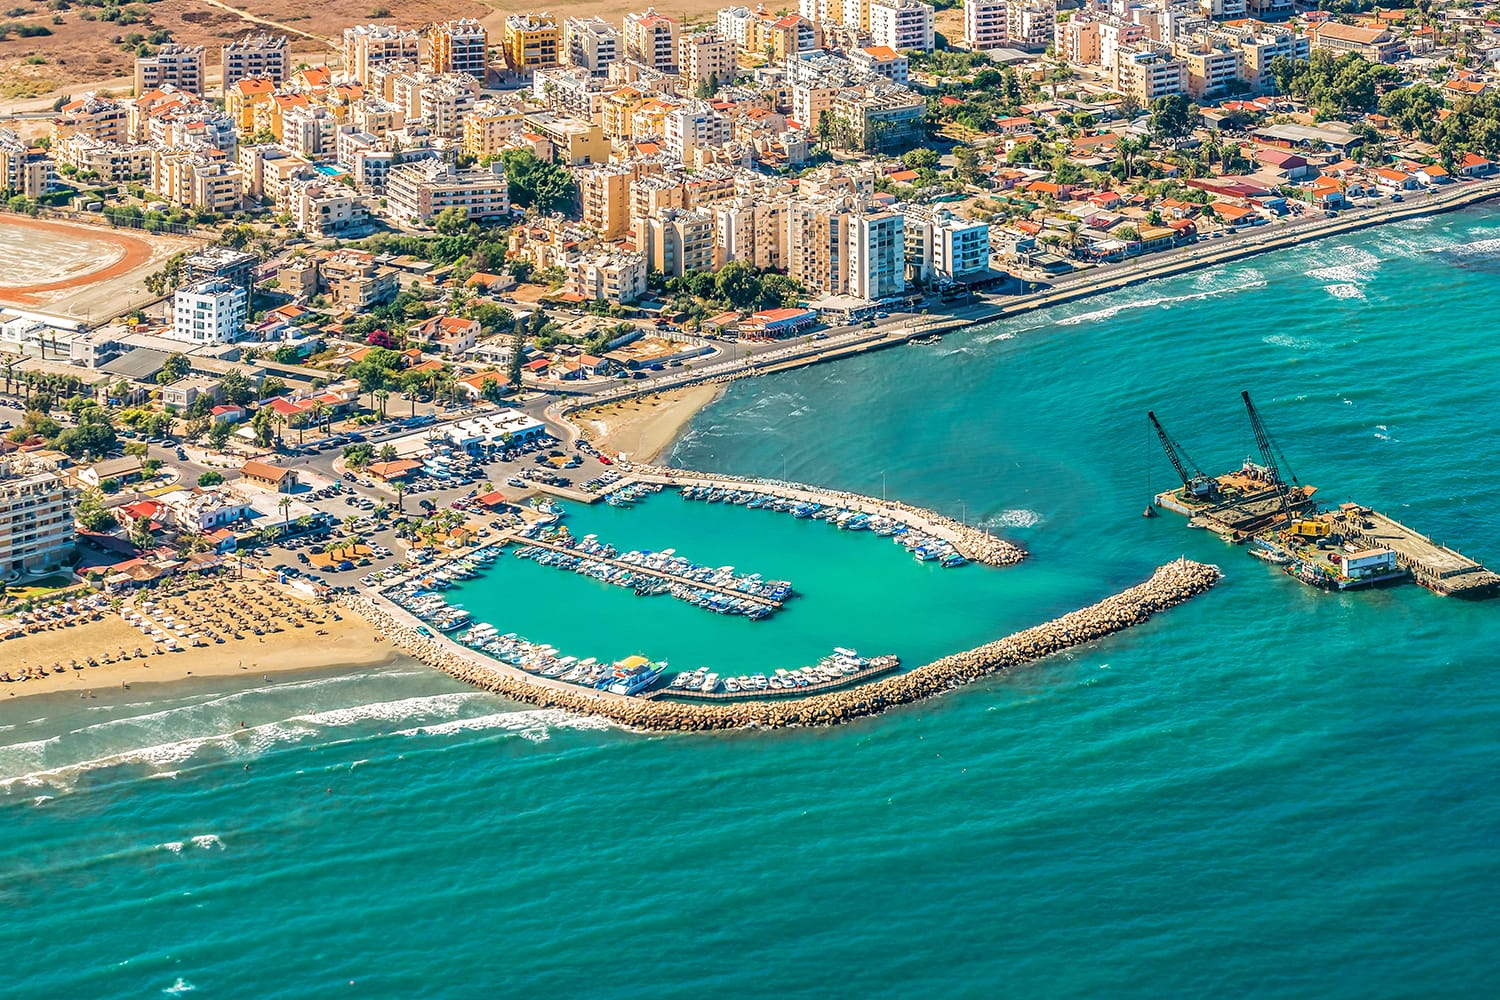 Sea port city of Larnaca, Cyprus. View from the aircraft to the coastline, beaches, seaport and the architecture of the city of Larnaca.